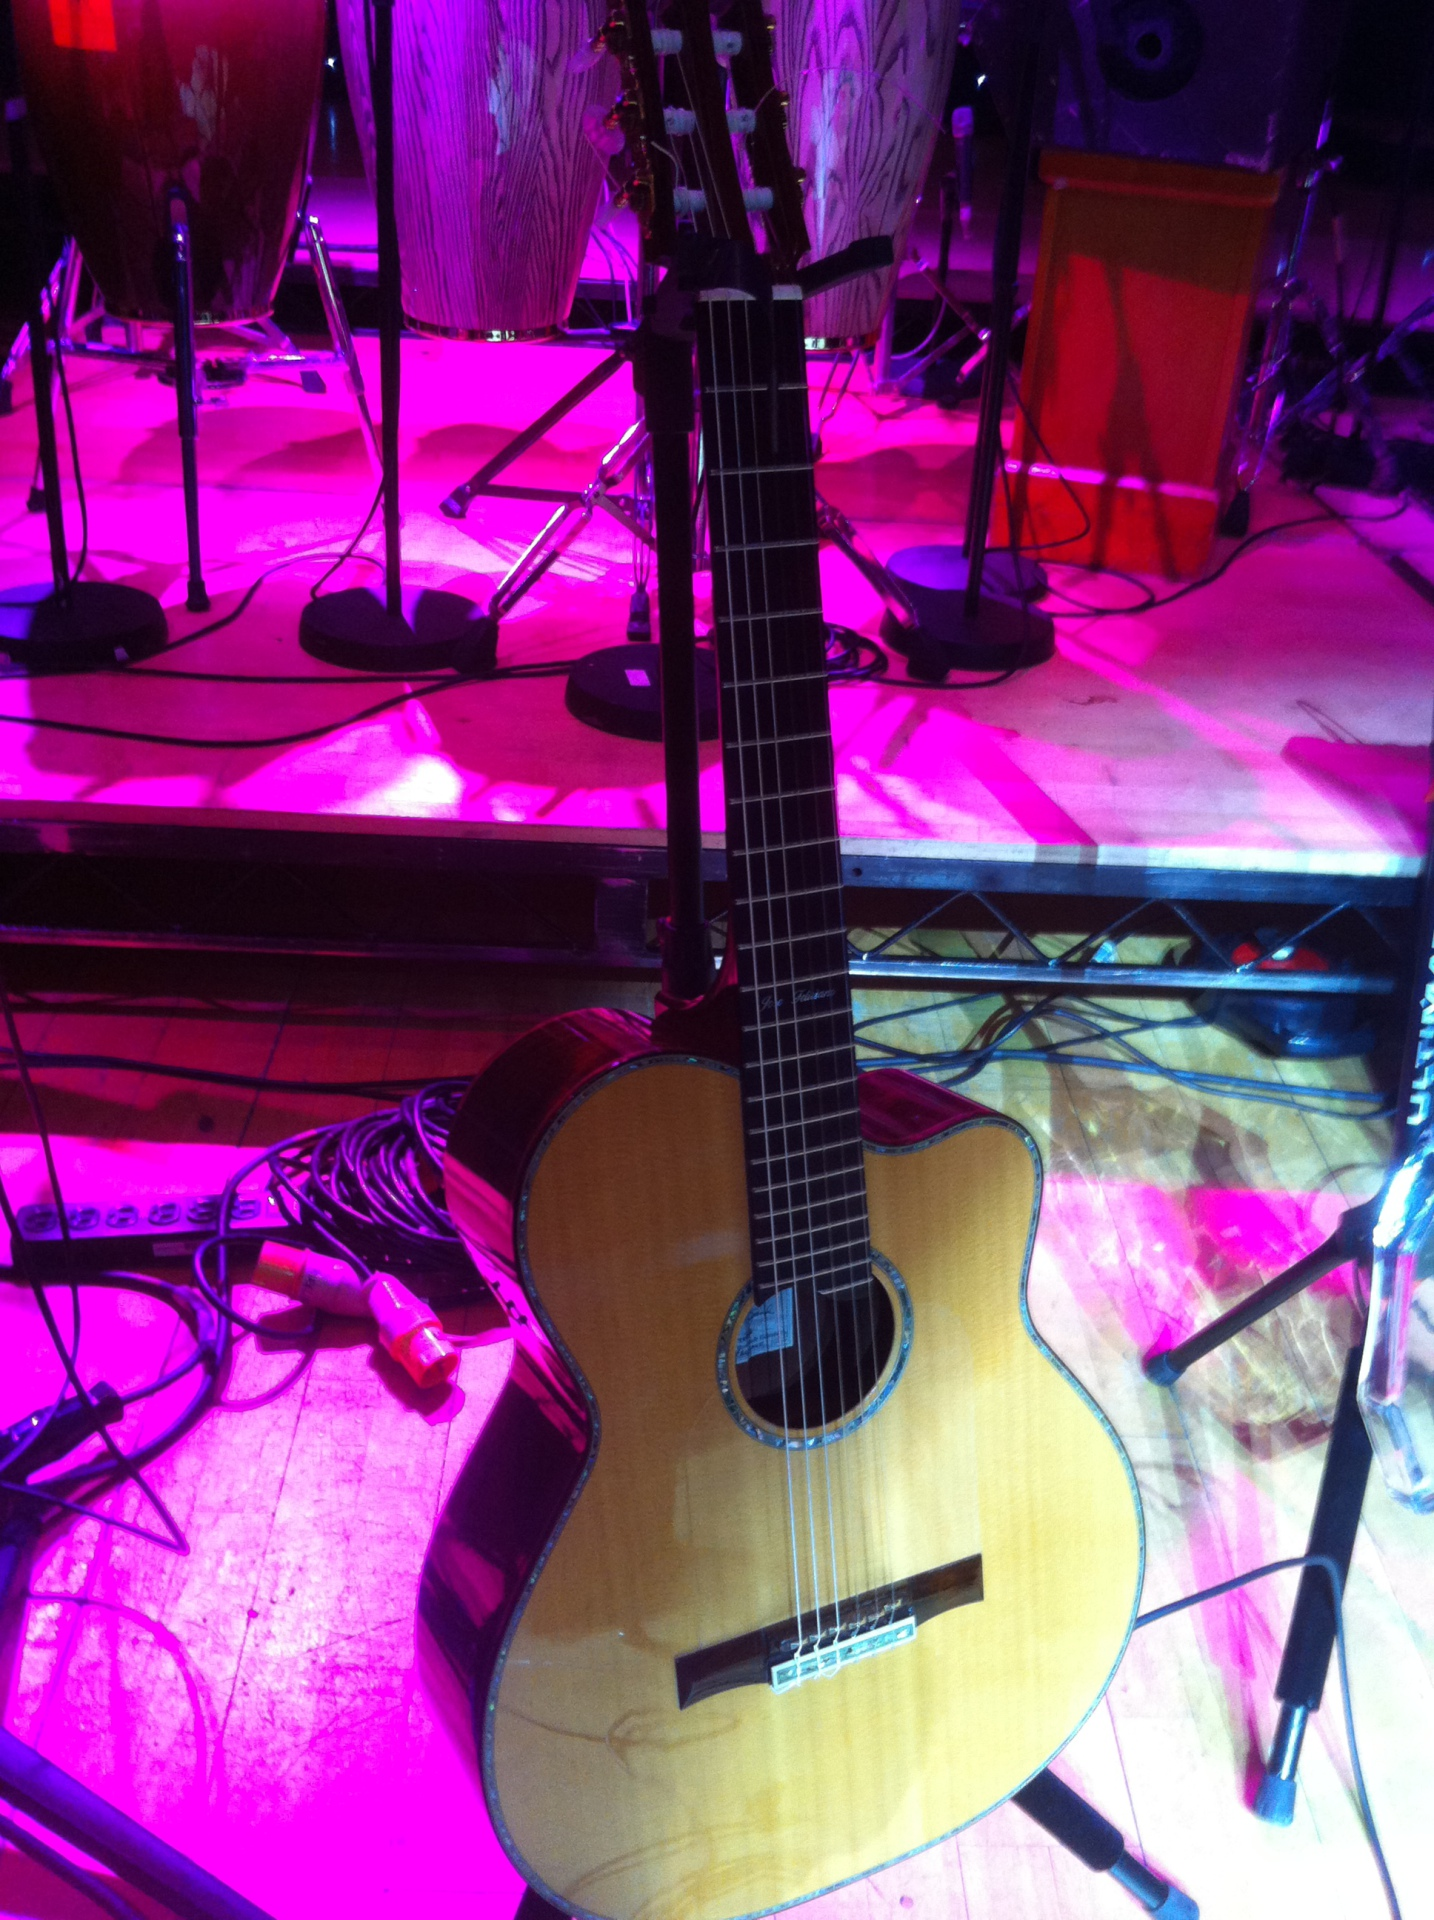 One of Jose's guitars!